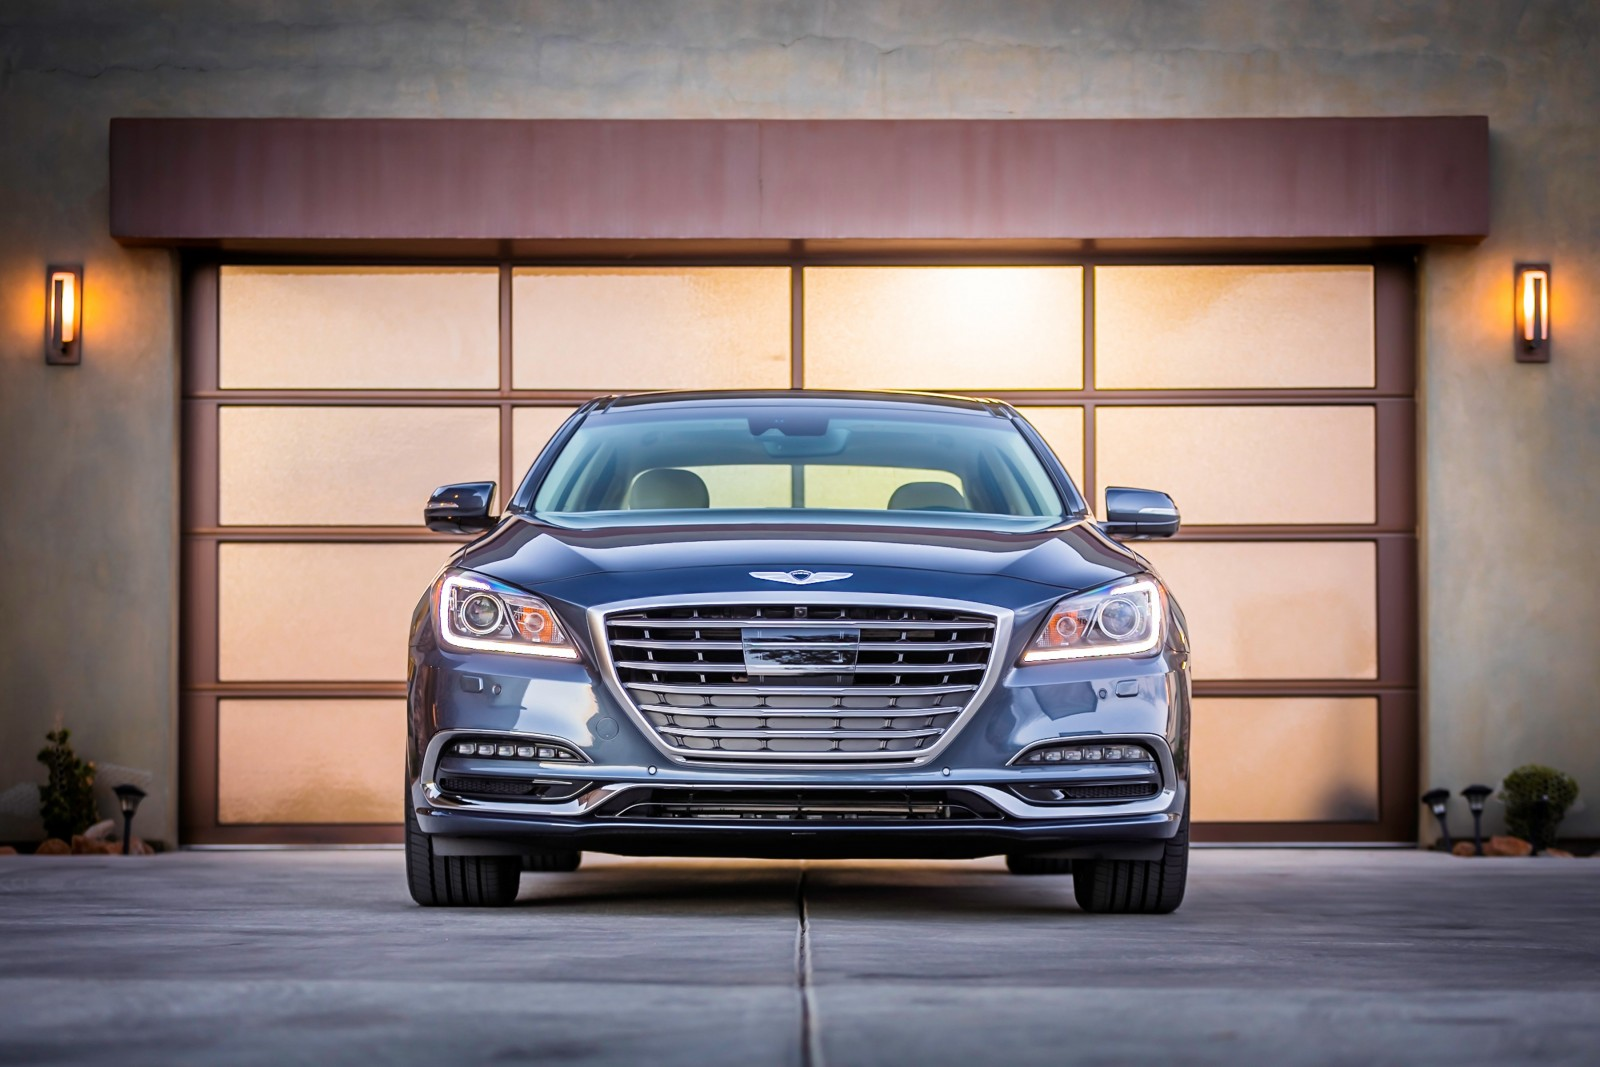 introducing 2018 genesis g80 and g80 sport openroad auto group. Black Bedroom Furniture Sets. Home Design Ideas